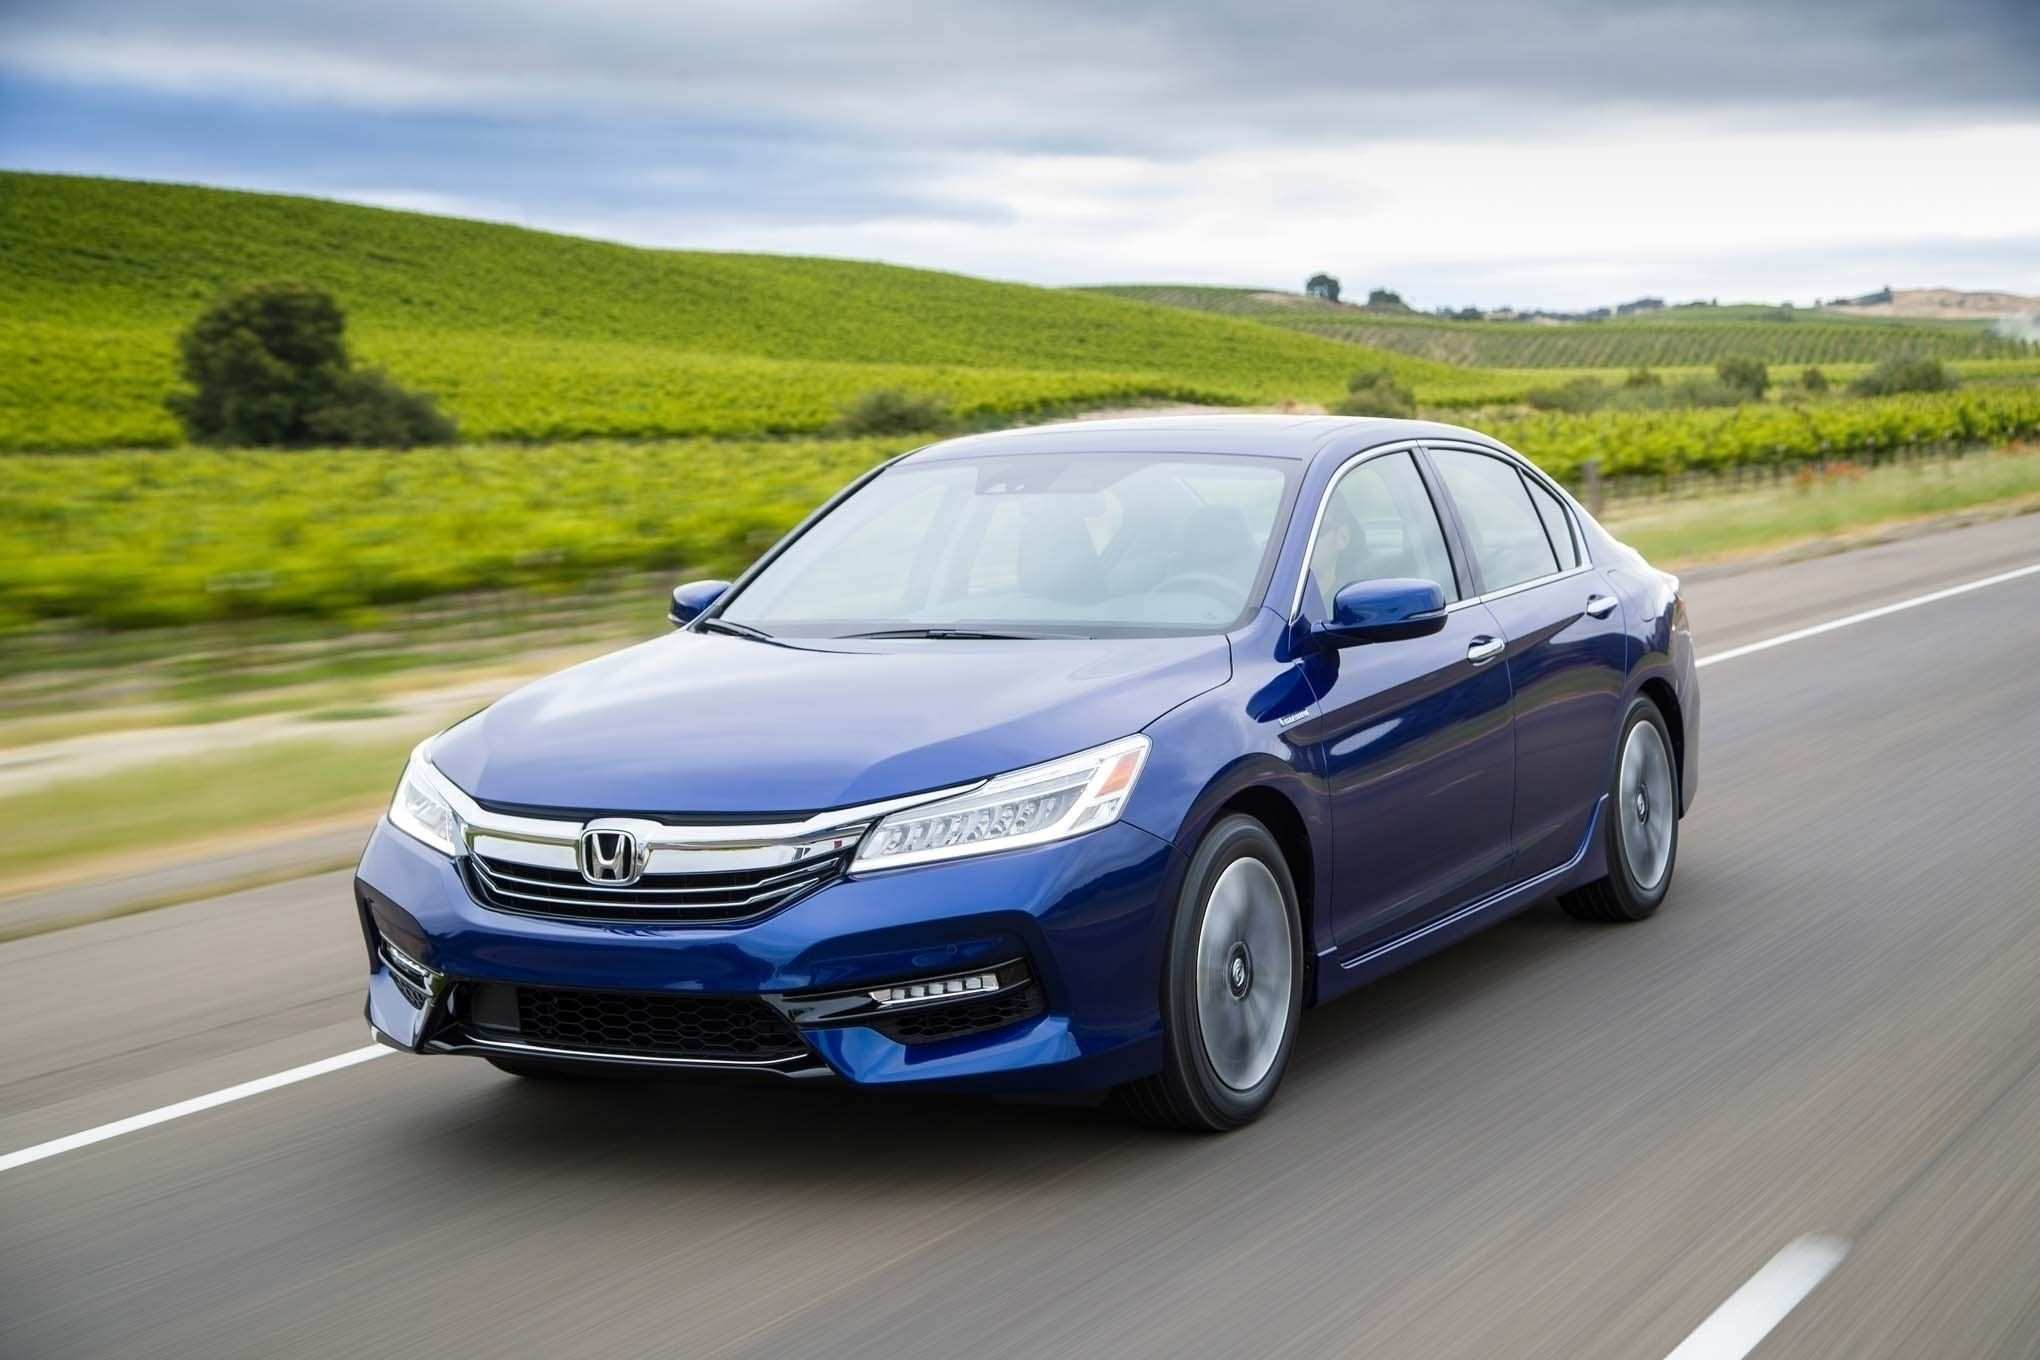 78 Great New Honda Accord Hybrid 2019 Price And Release Date Configurations for New Honda Accord Hybrid 2019 Price And Release Date